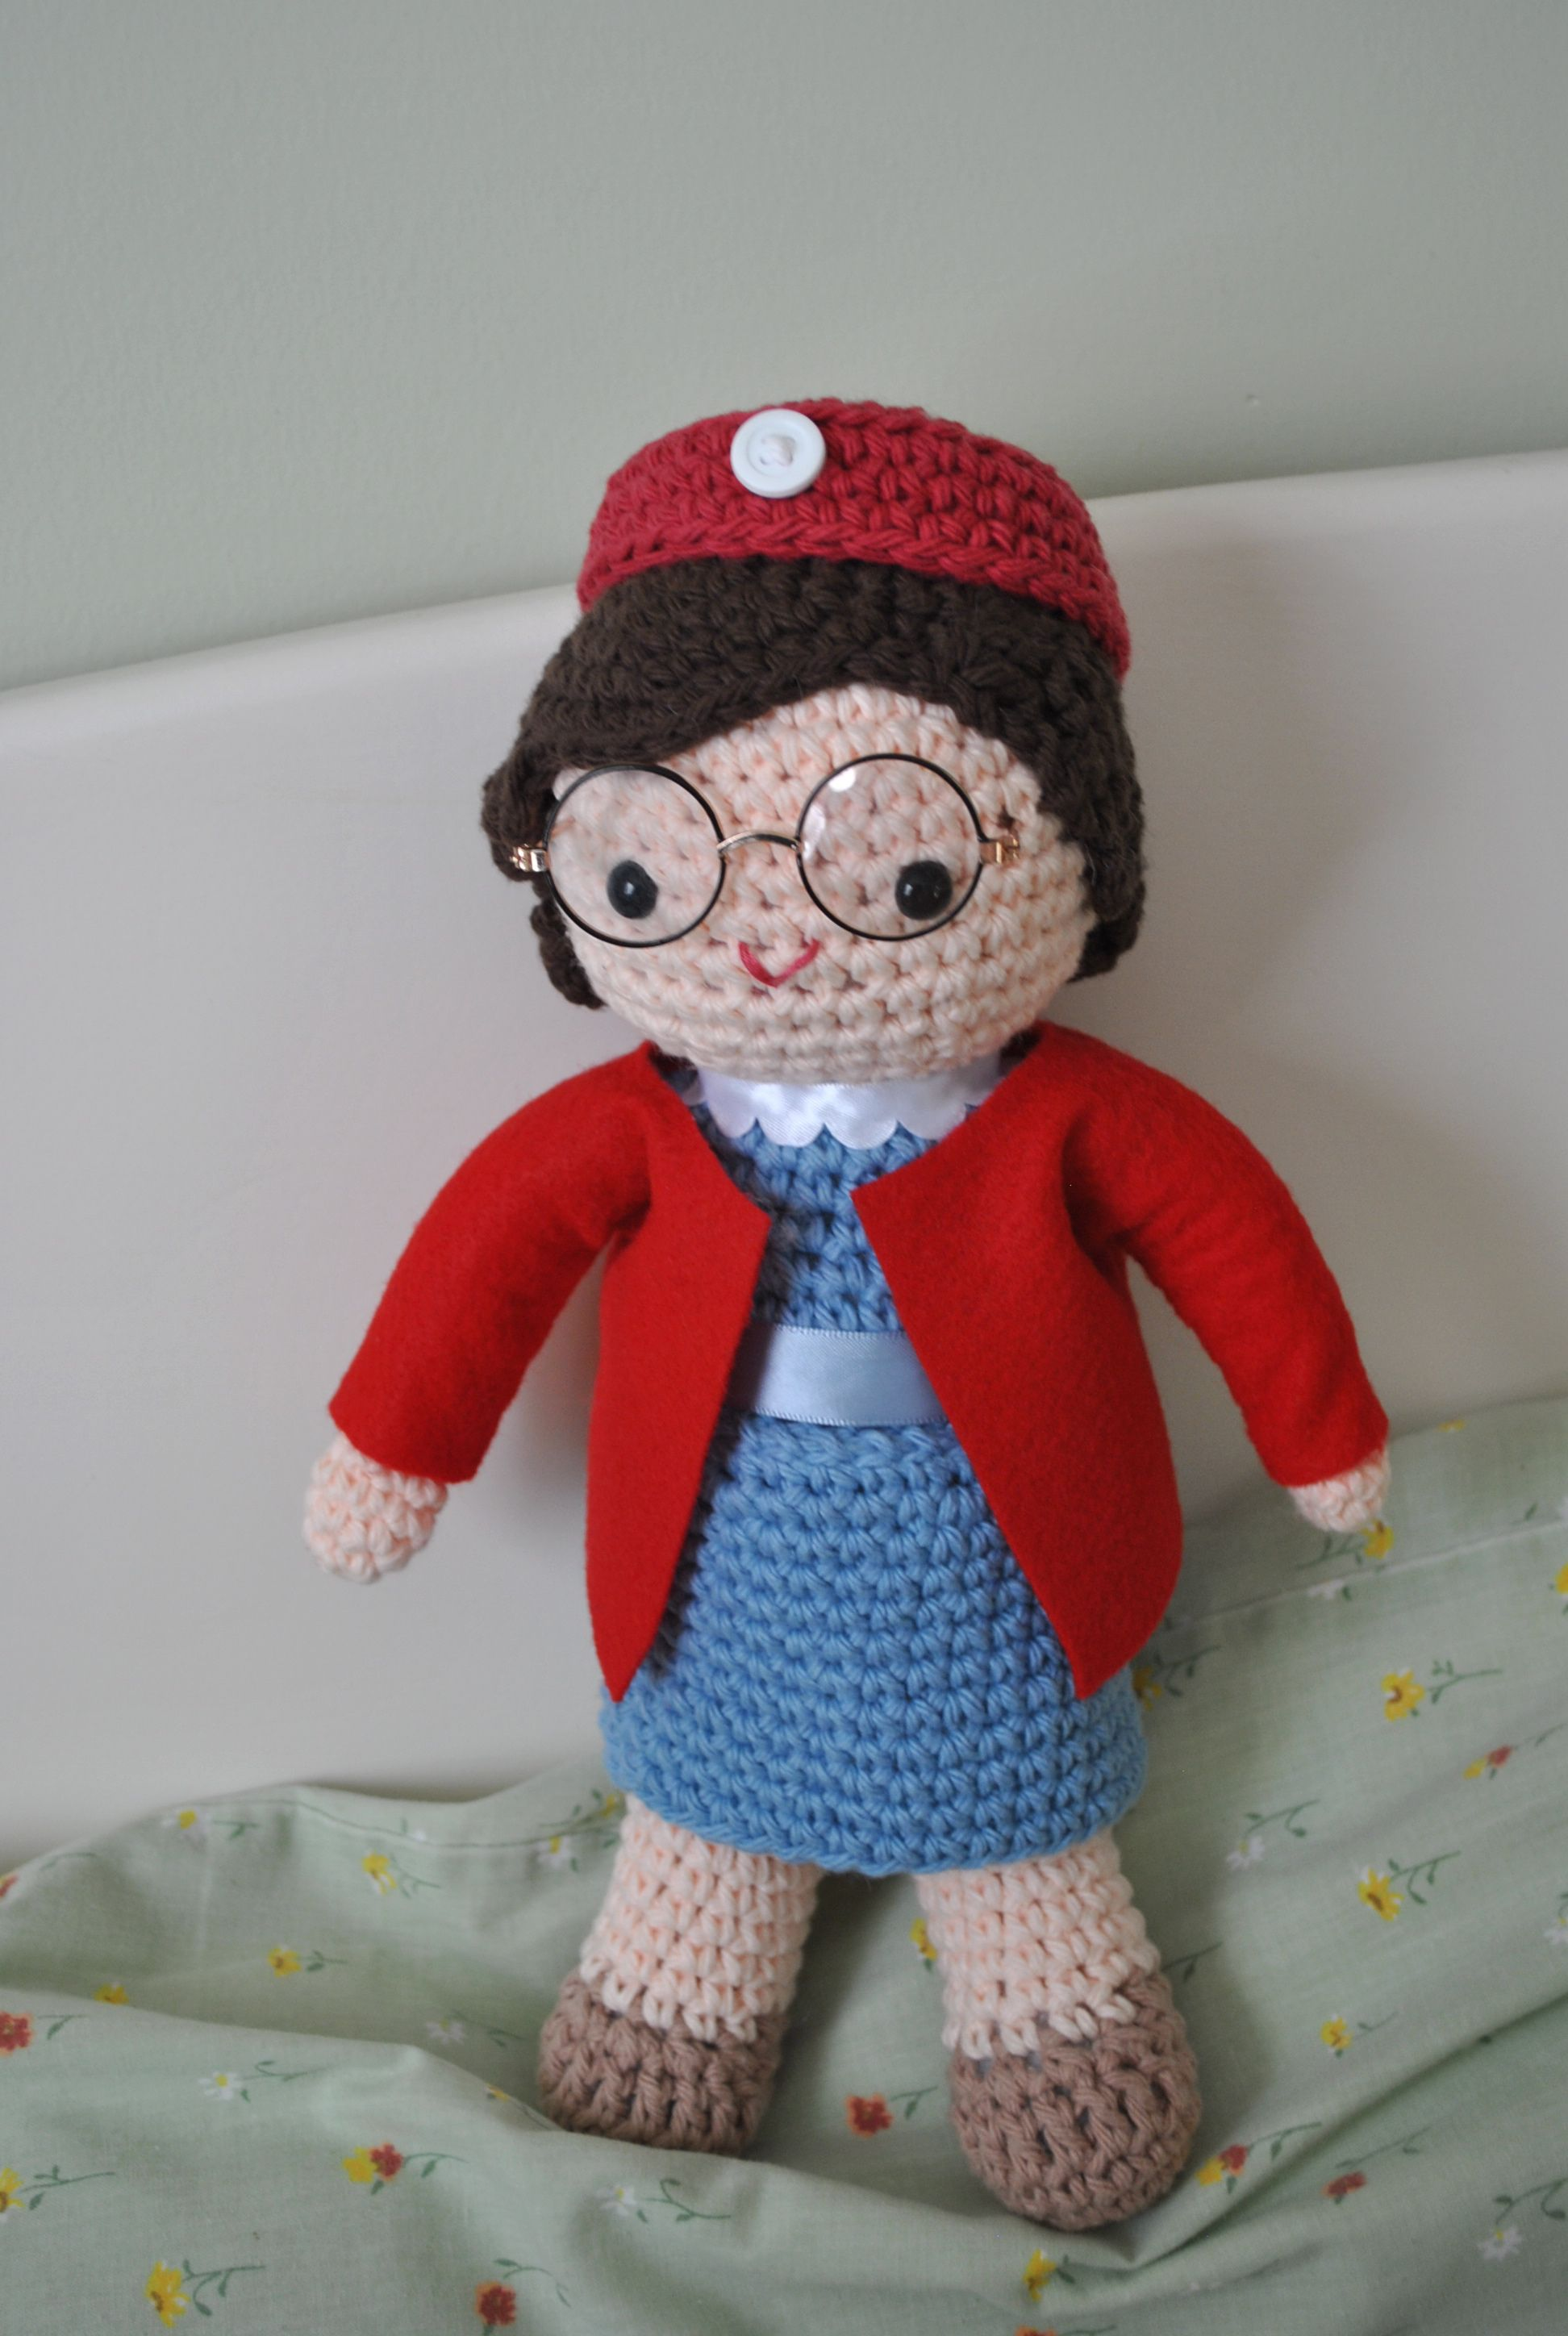 Free Chummy Pattern Now Available! | Pinterest | Dolls, Patterns and ...